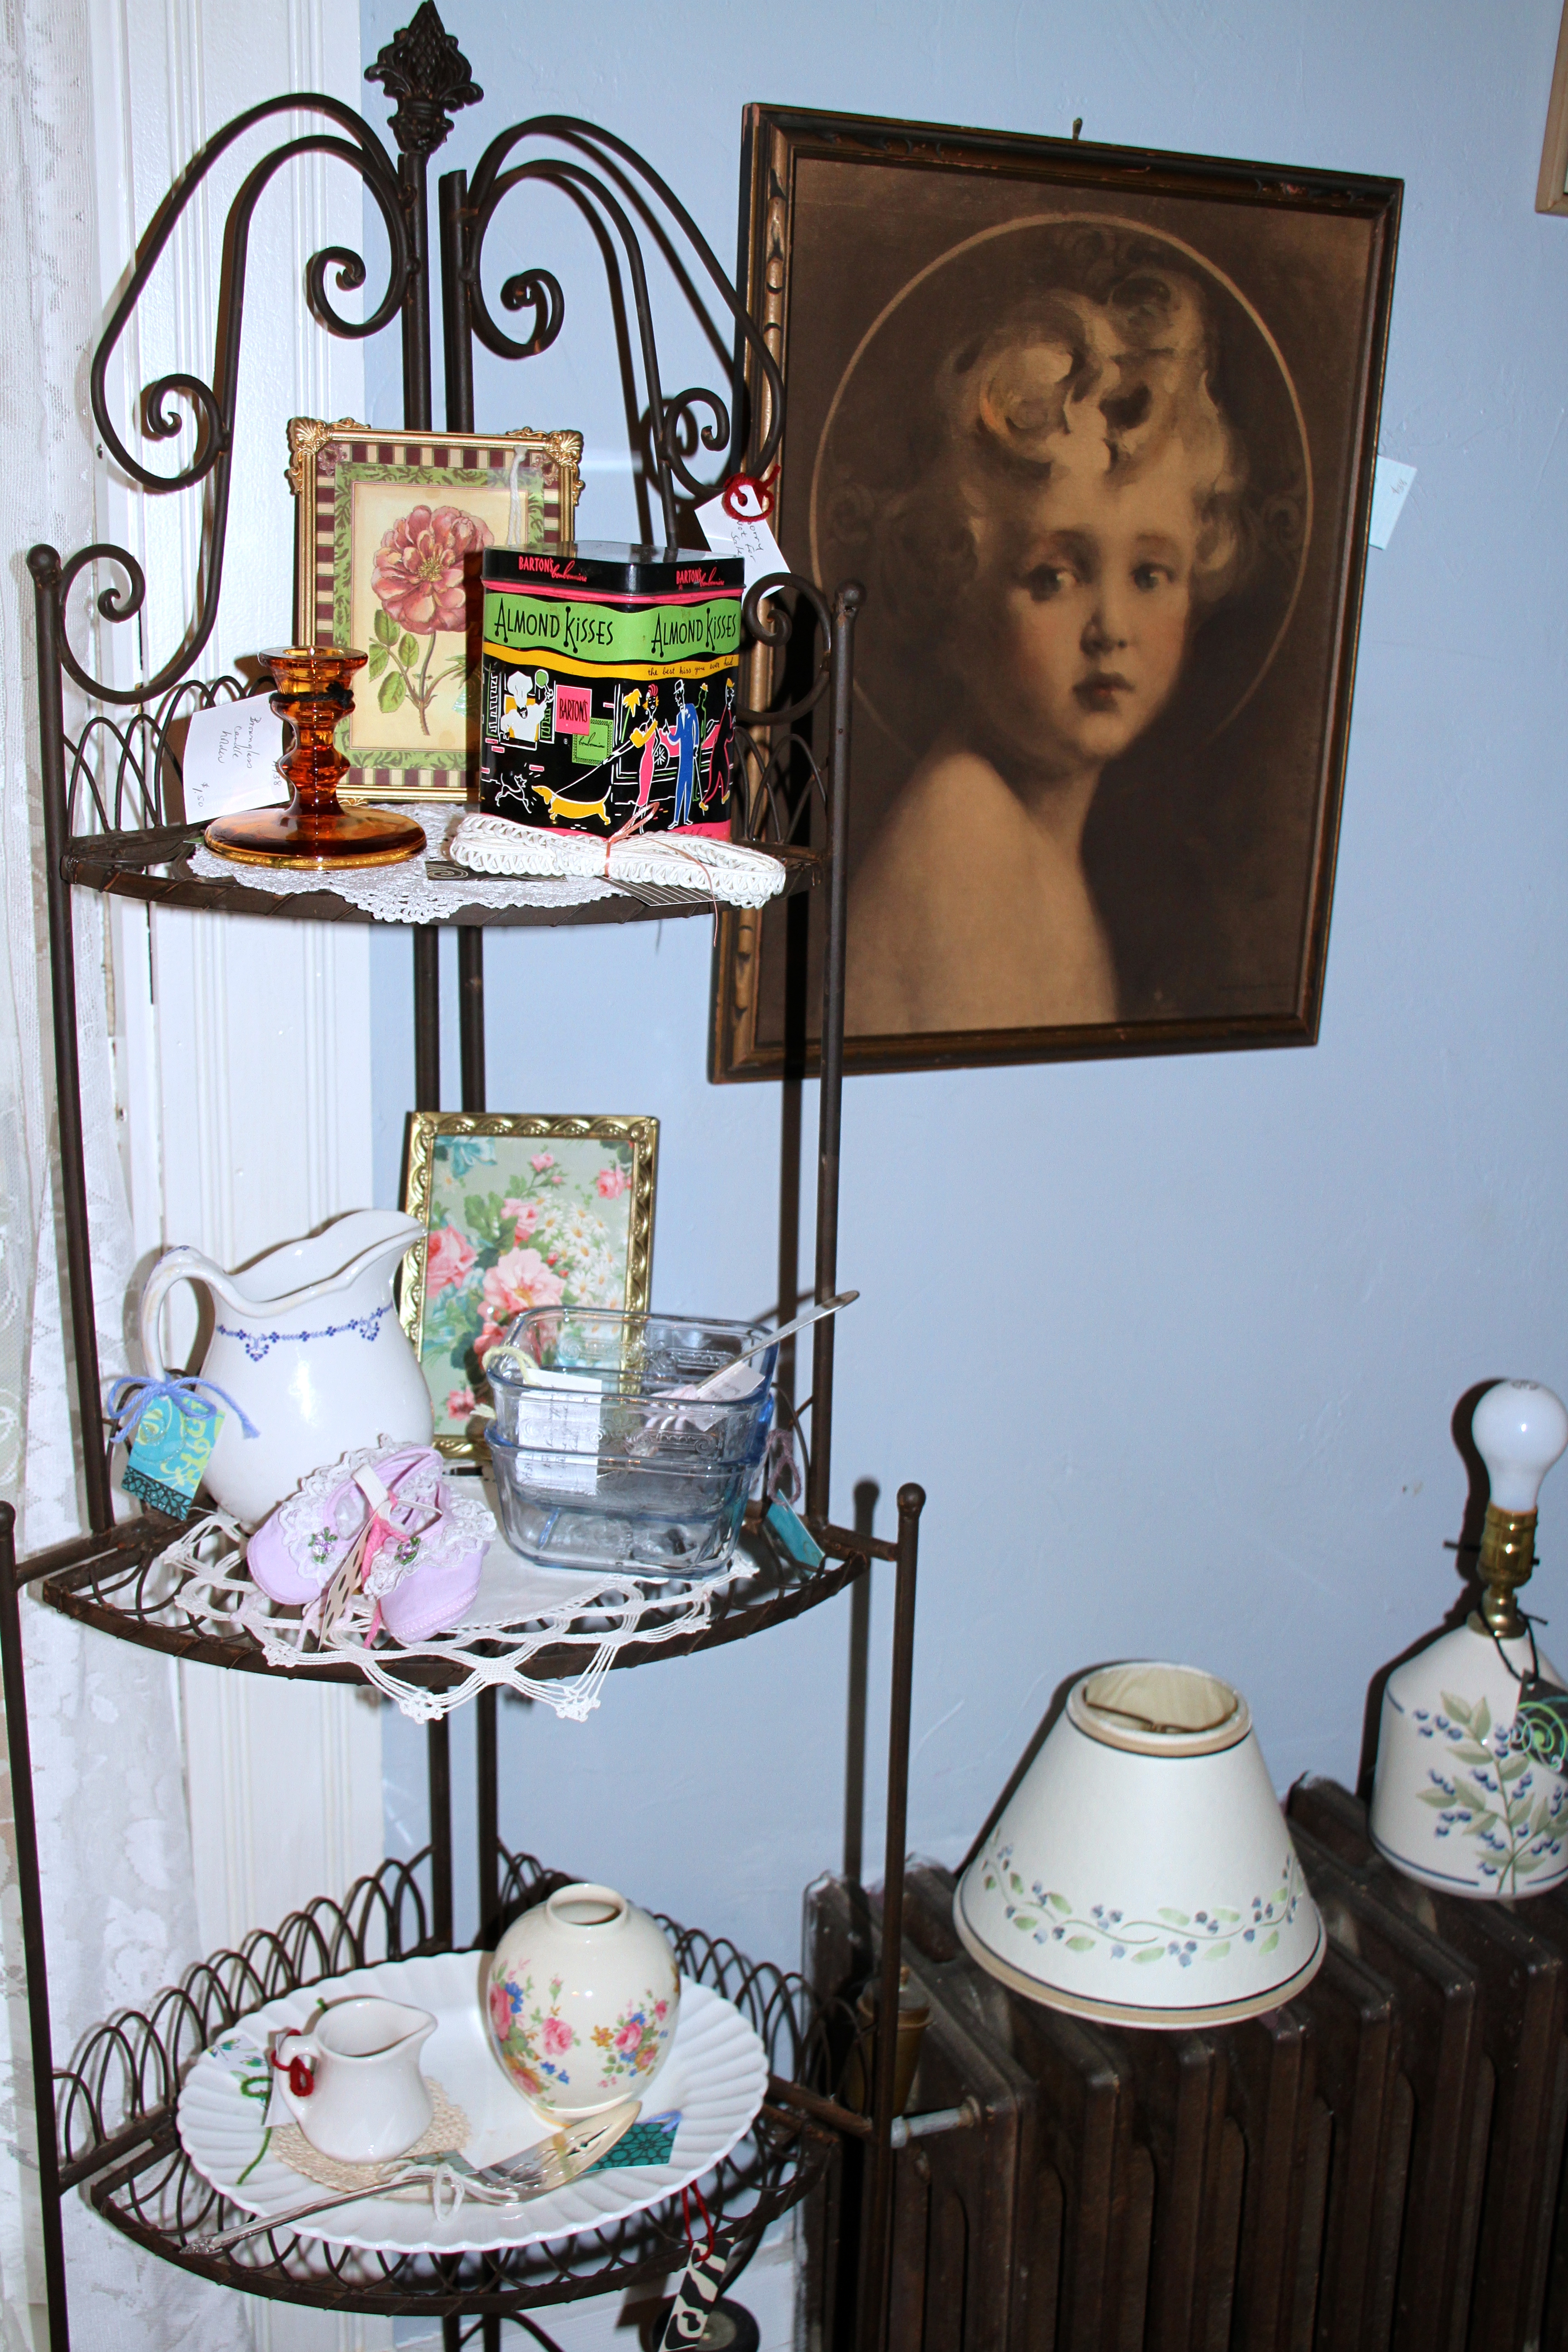 Valentine Antiques Finds Home in Burton | Geauga County Maple Leaf